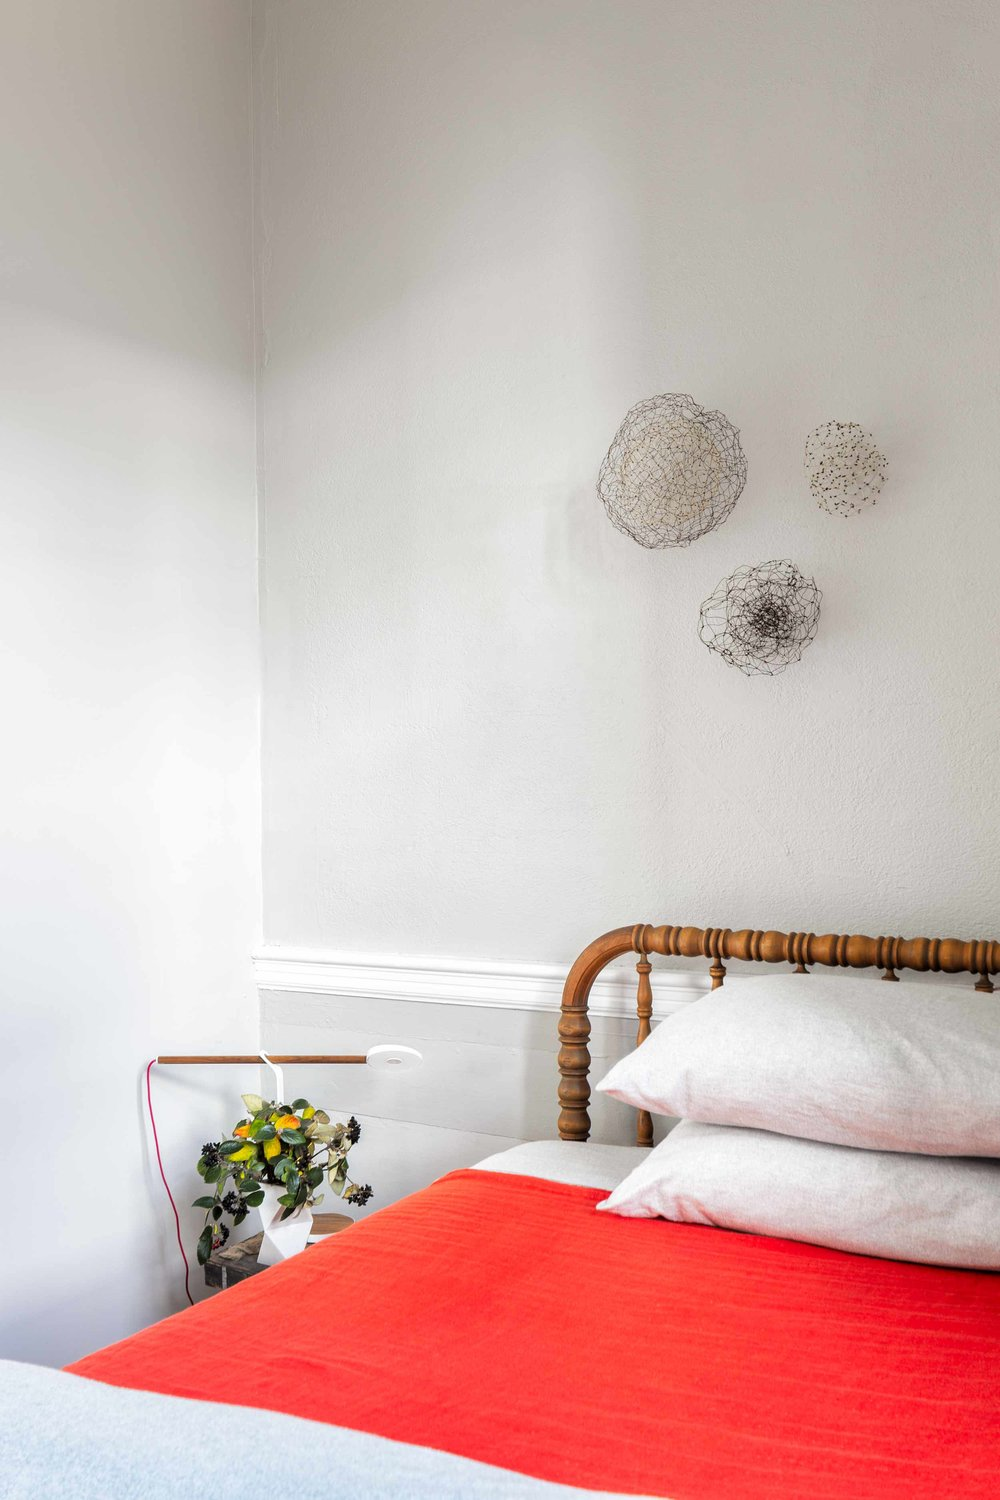 In the guest room, metalwork sculptures by Anna Hepler hang above an antique Jenny Lind spool bed.